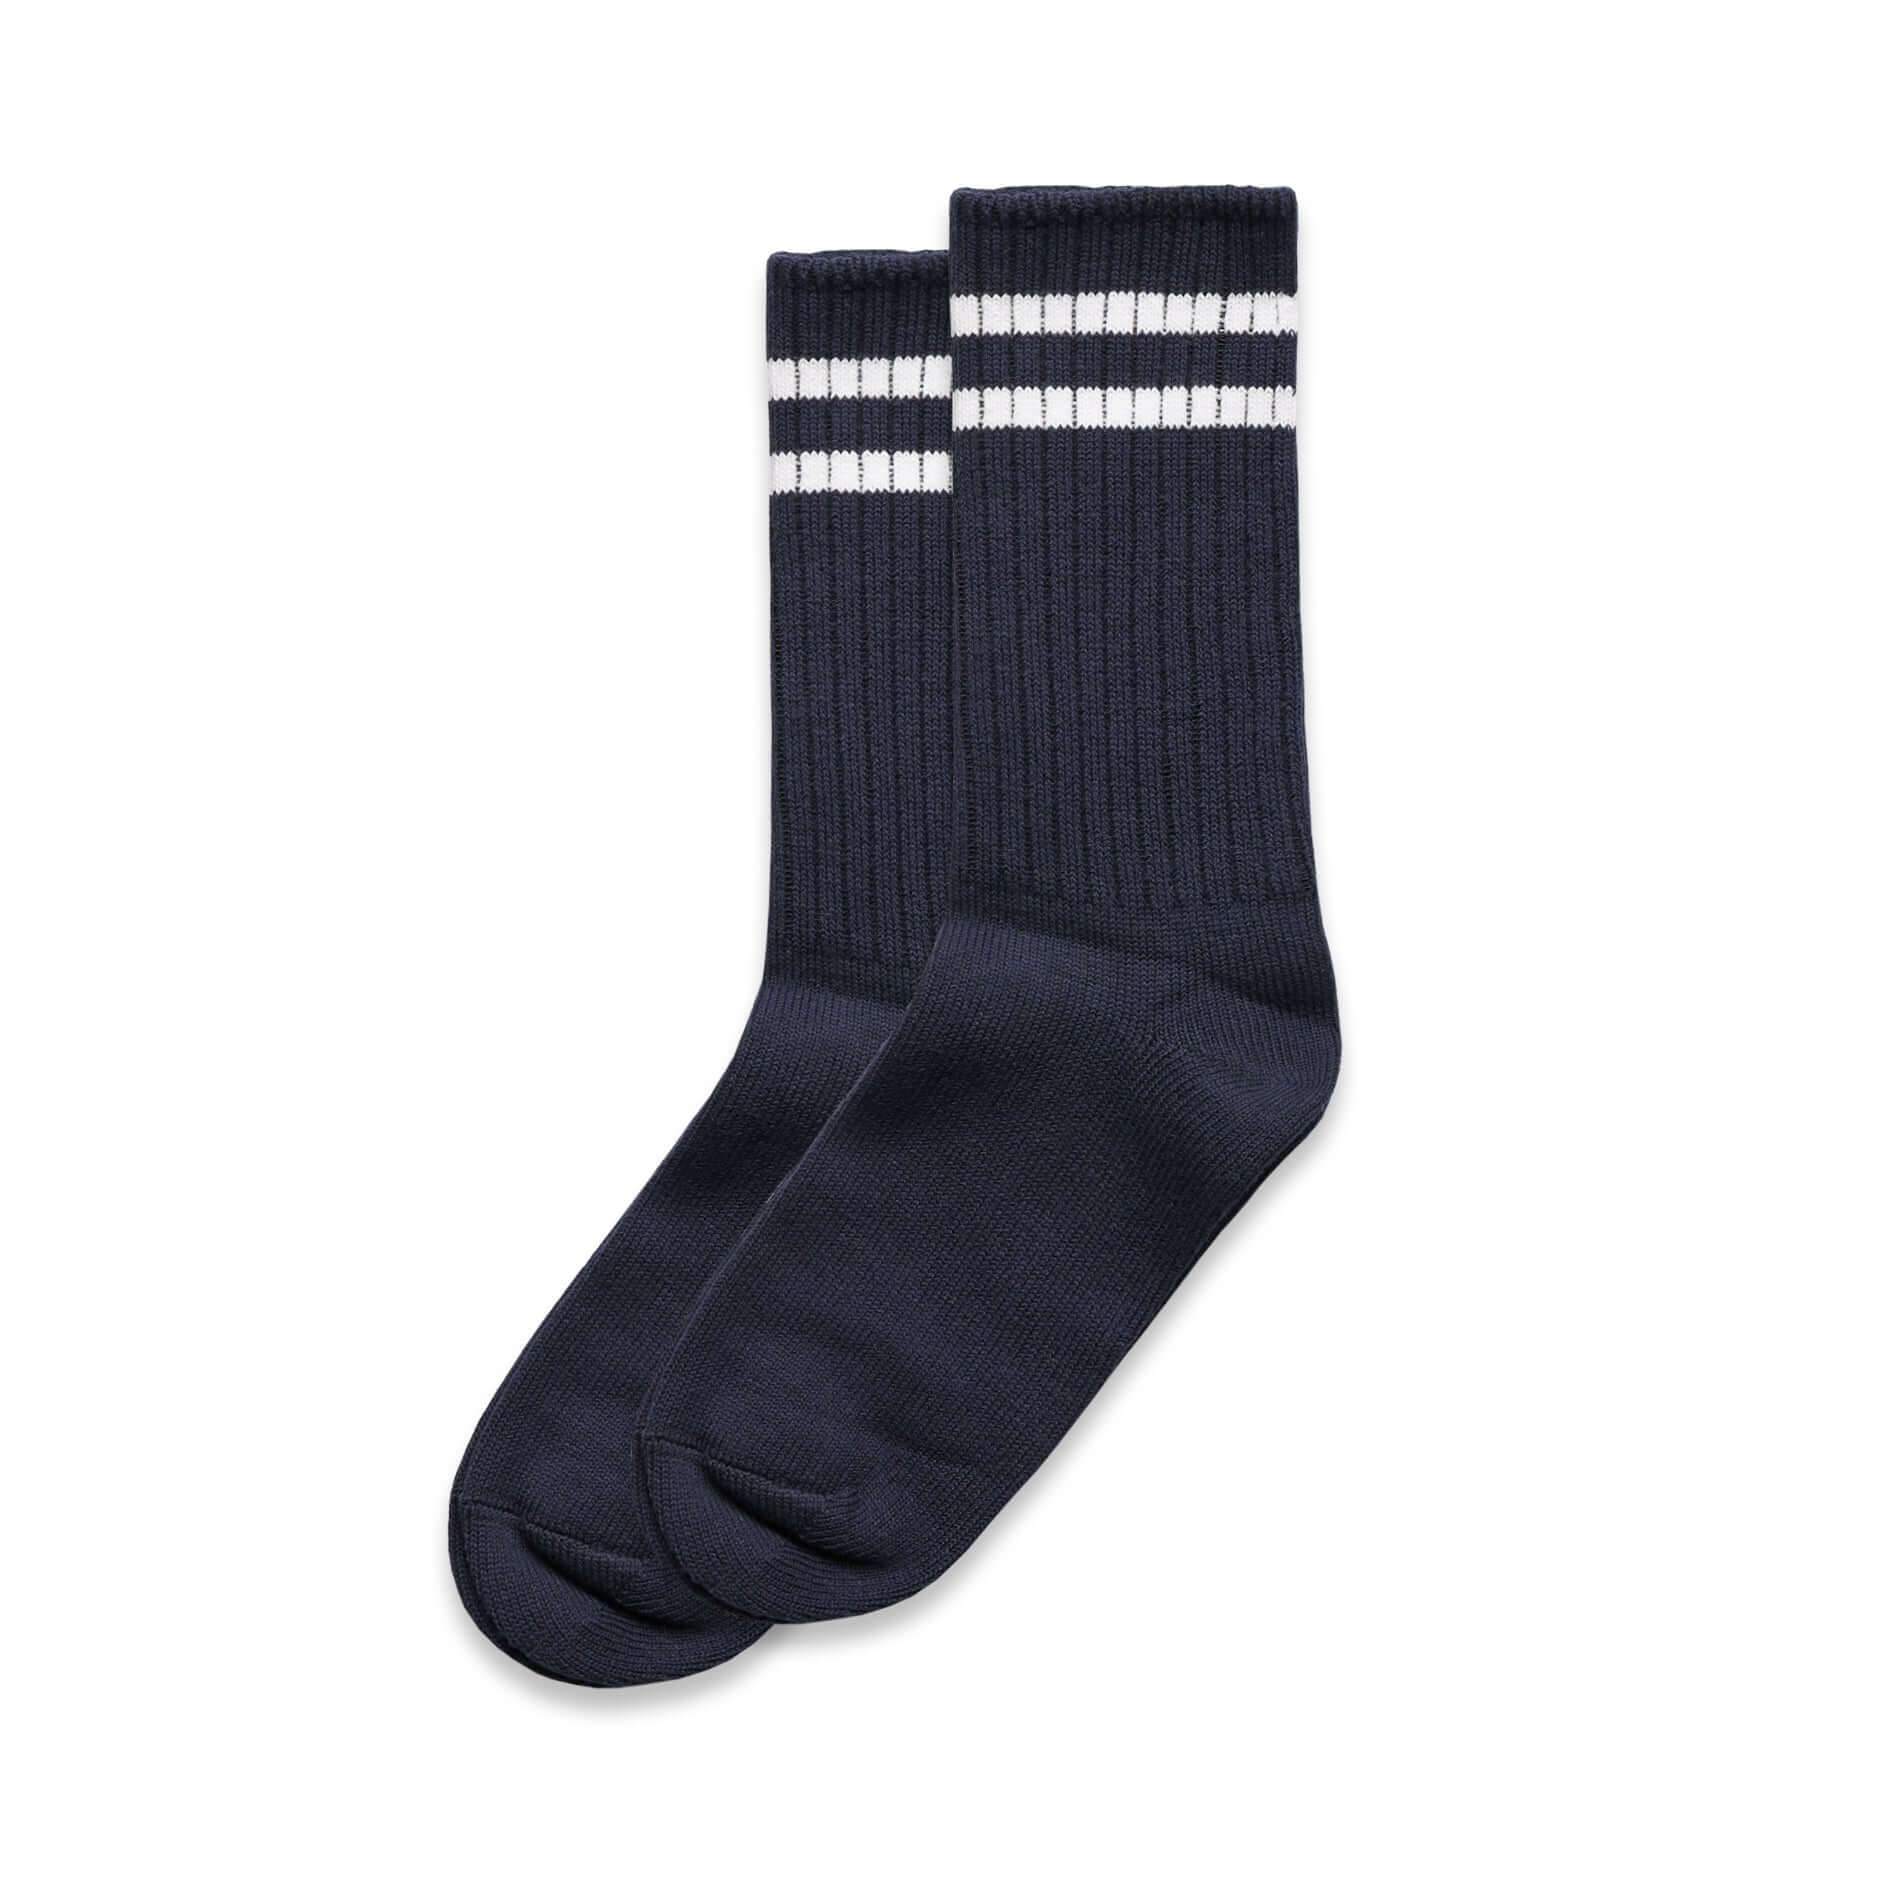 AS Colour TUBE SOCKS - Navy